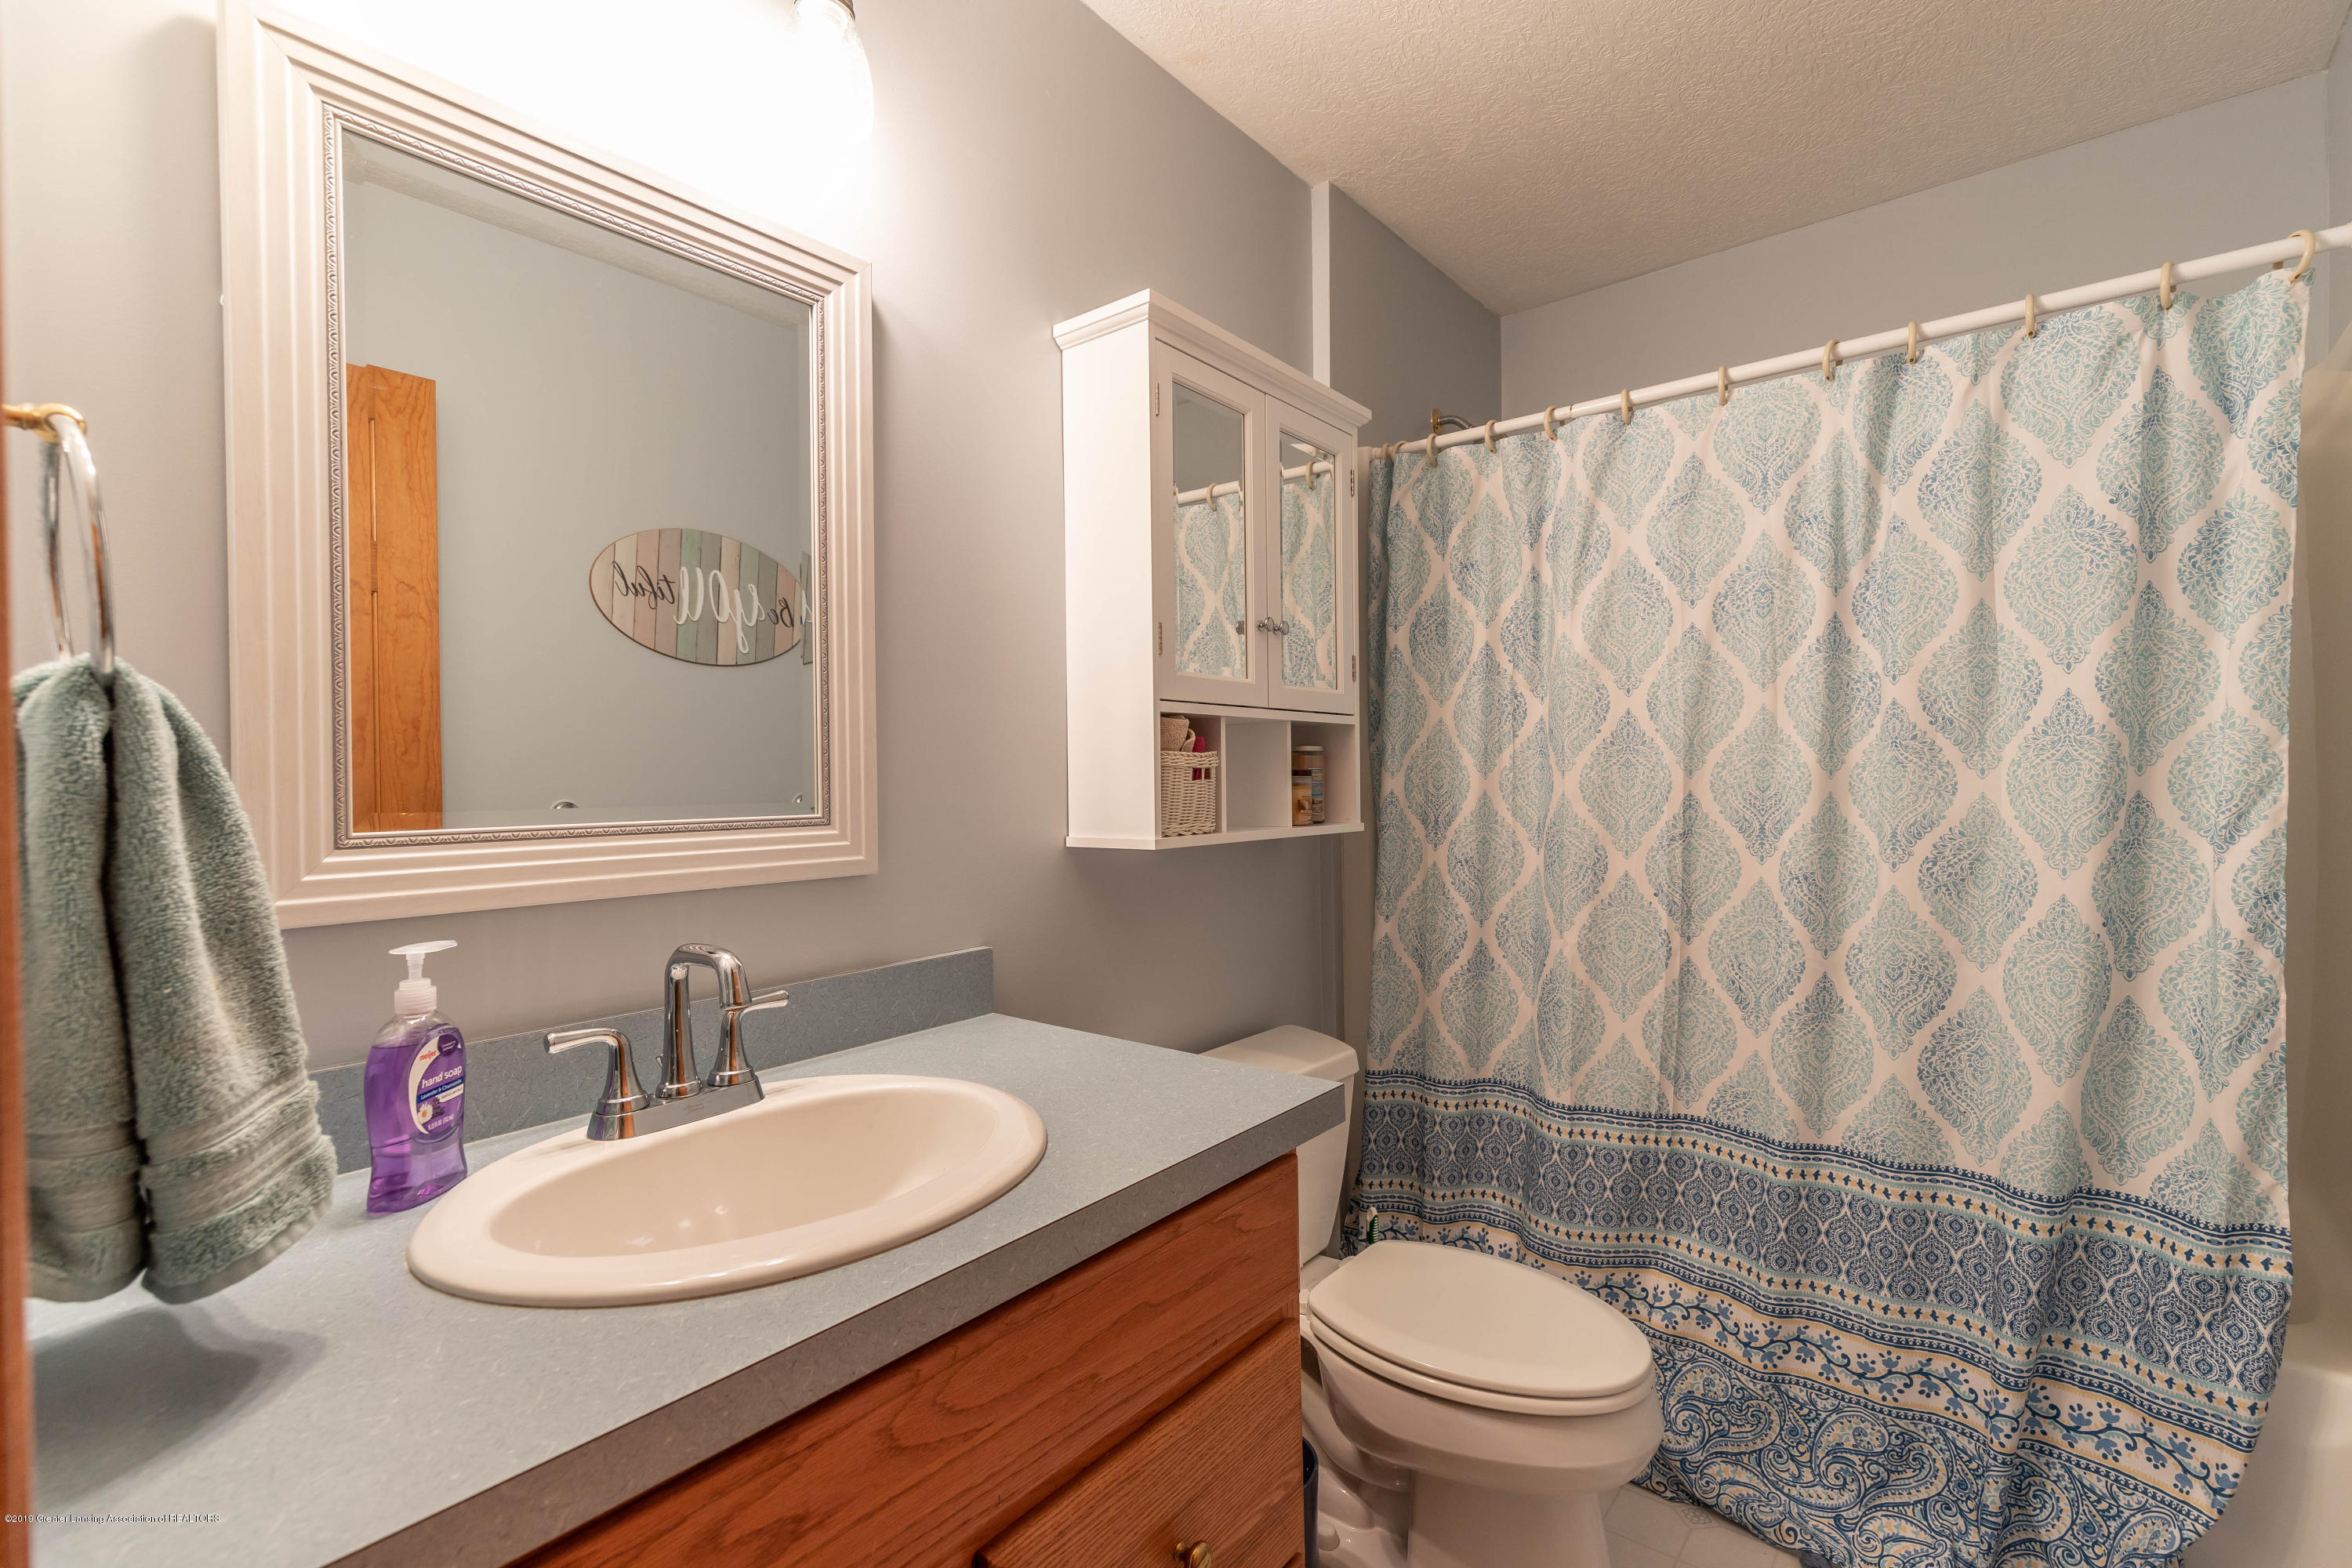 13185 Watercrest Dr - Bathroom #2 - 29